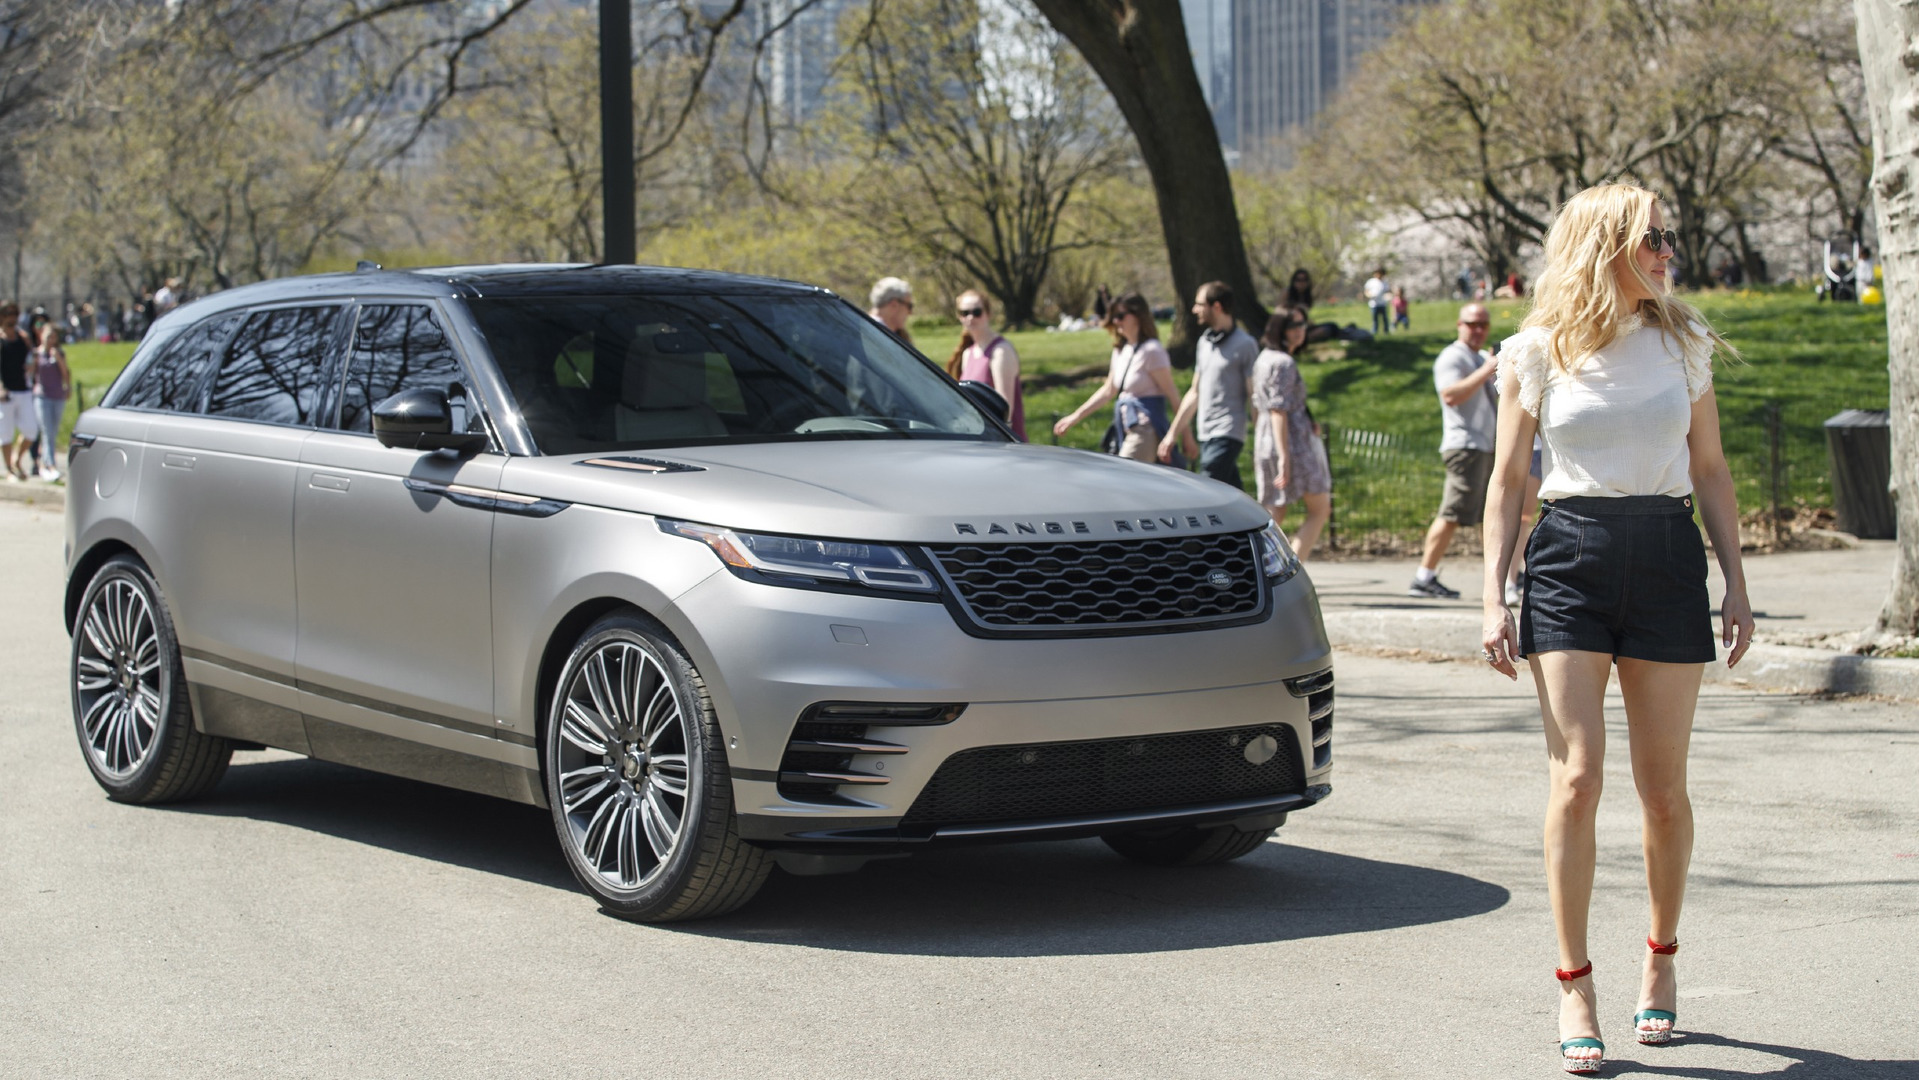 range rover velar makes u s debut with help from ellie goulding. Black Bedroom Furniture Sets. Home Design Ideas